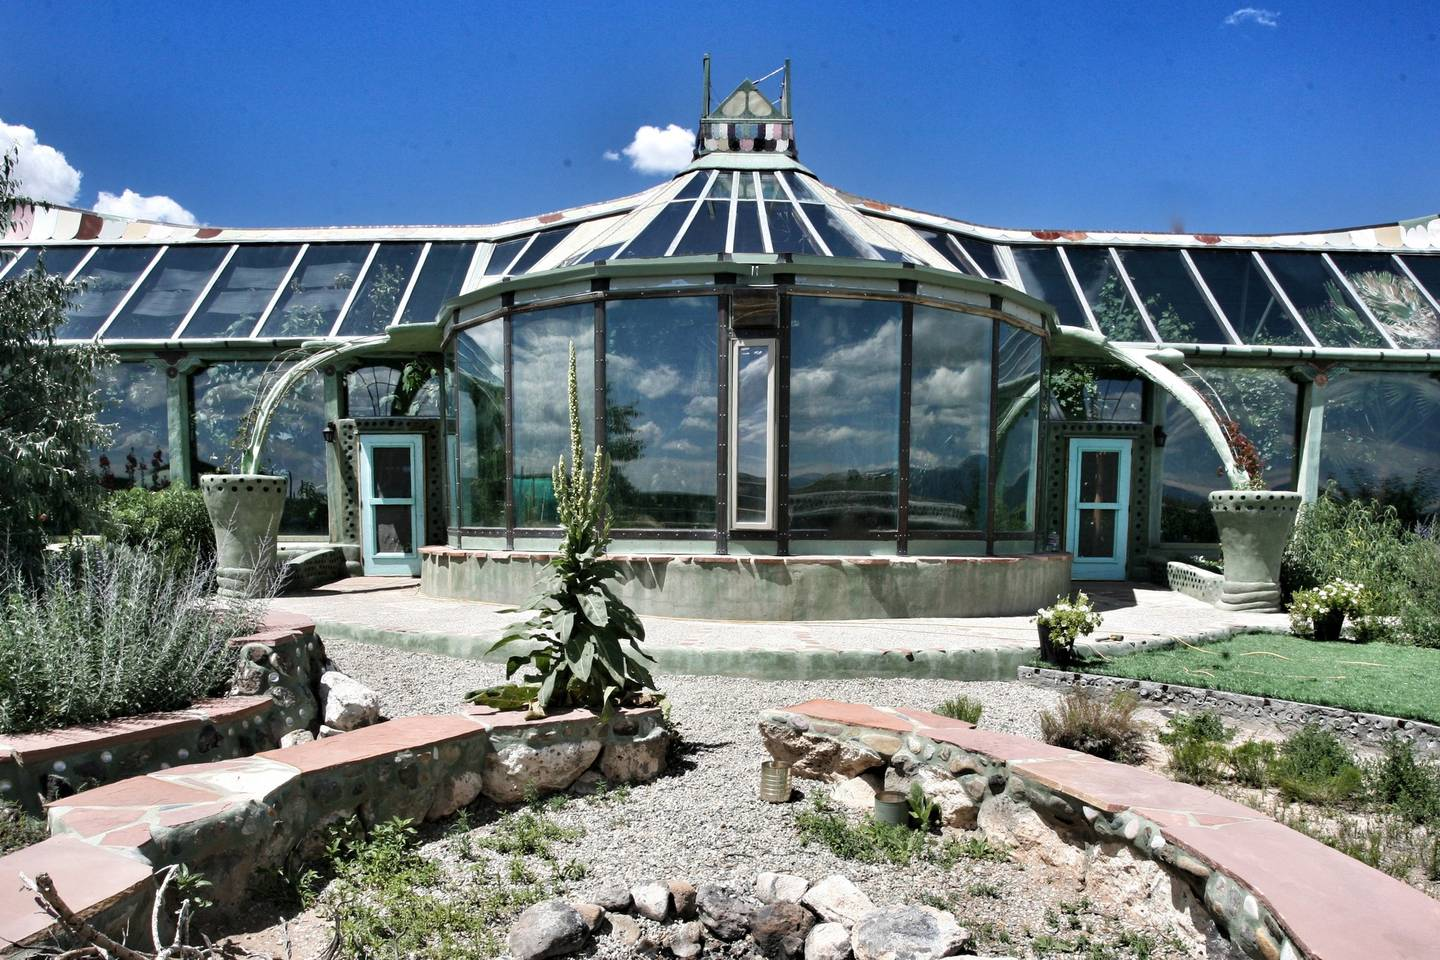 Phoenix Earthship. (Photo courtesy of Airbnb.)